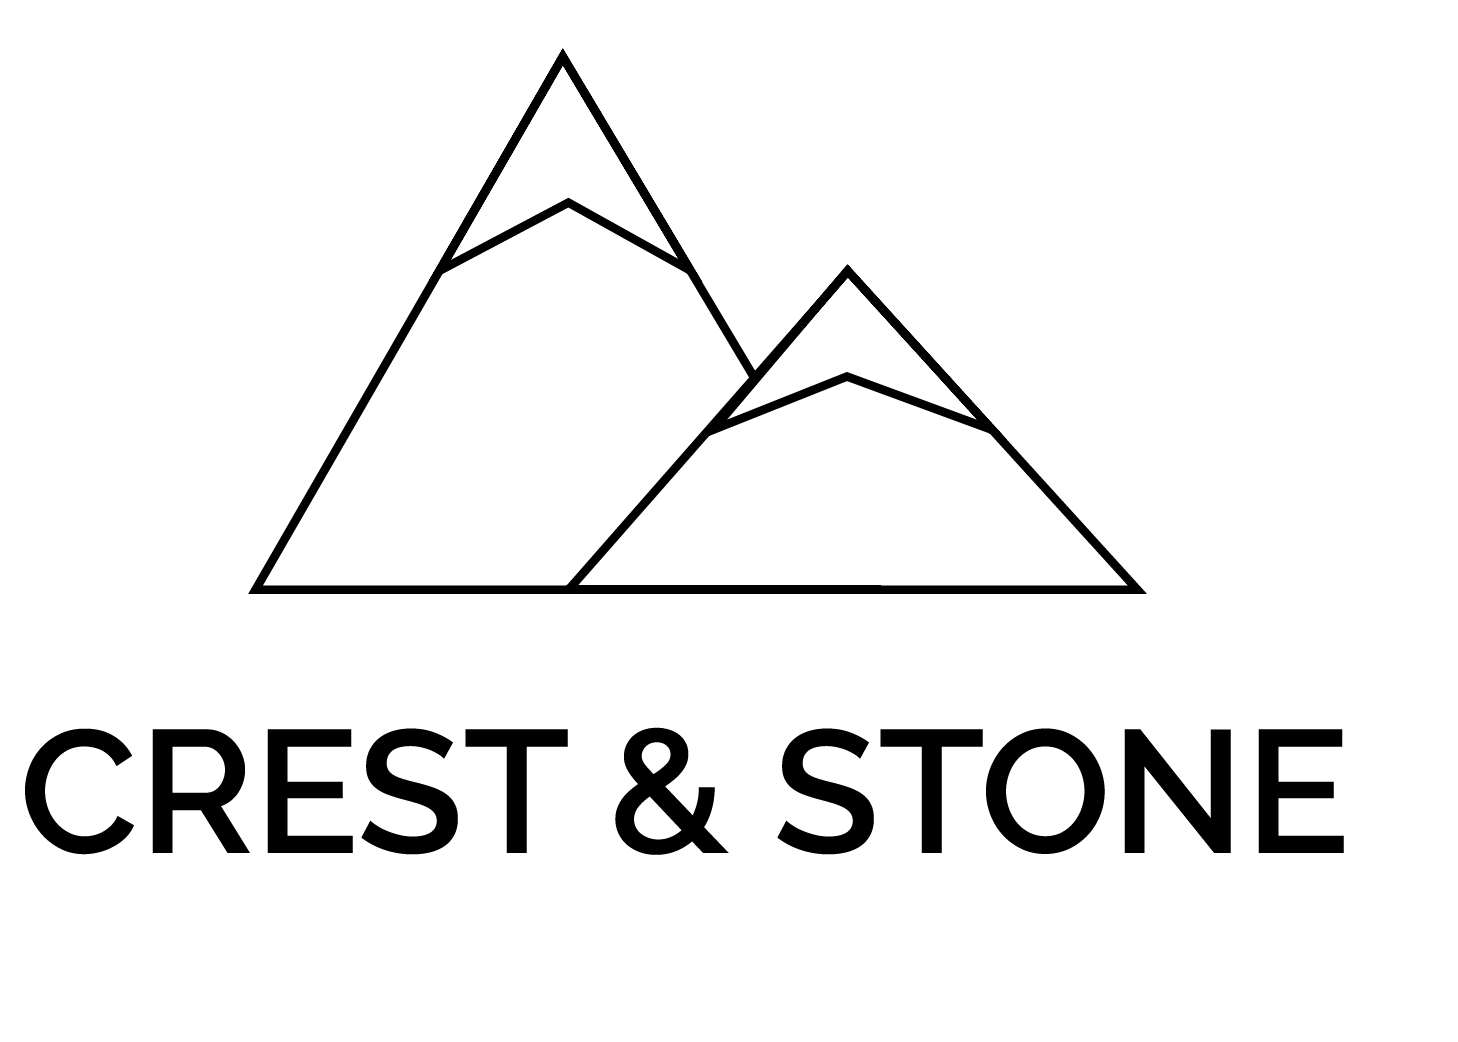 Crest and Stone